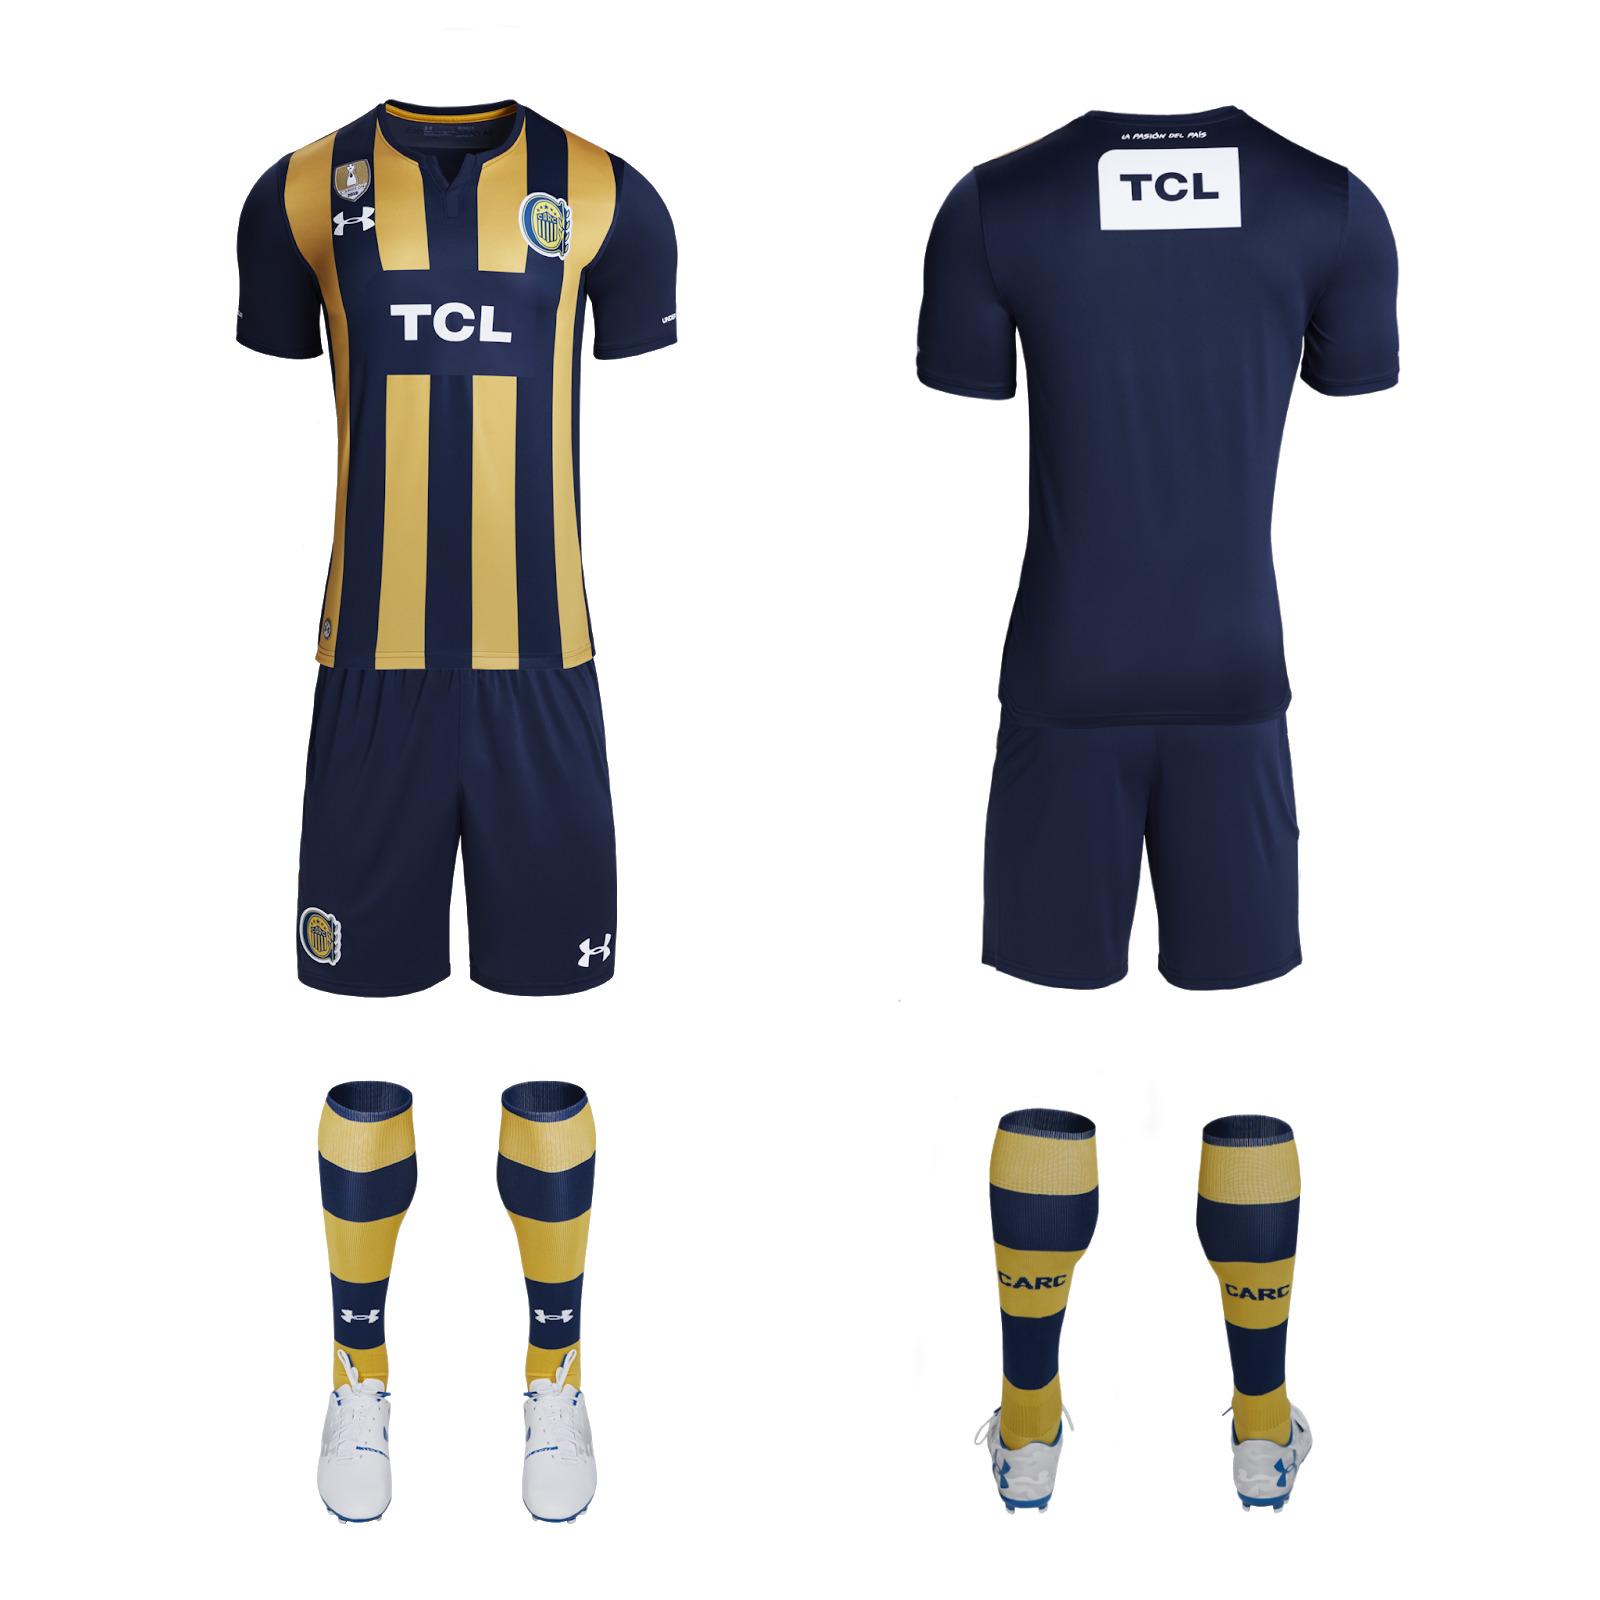 ... Click to enlarge image rosario central 2019 under armour home kit c.jpg  ... 85d30553f